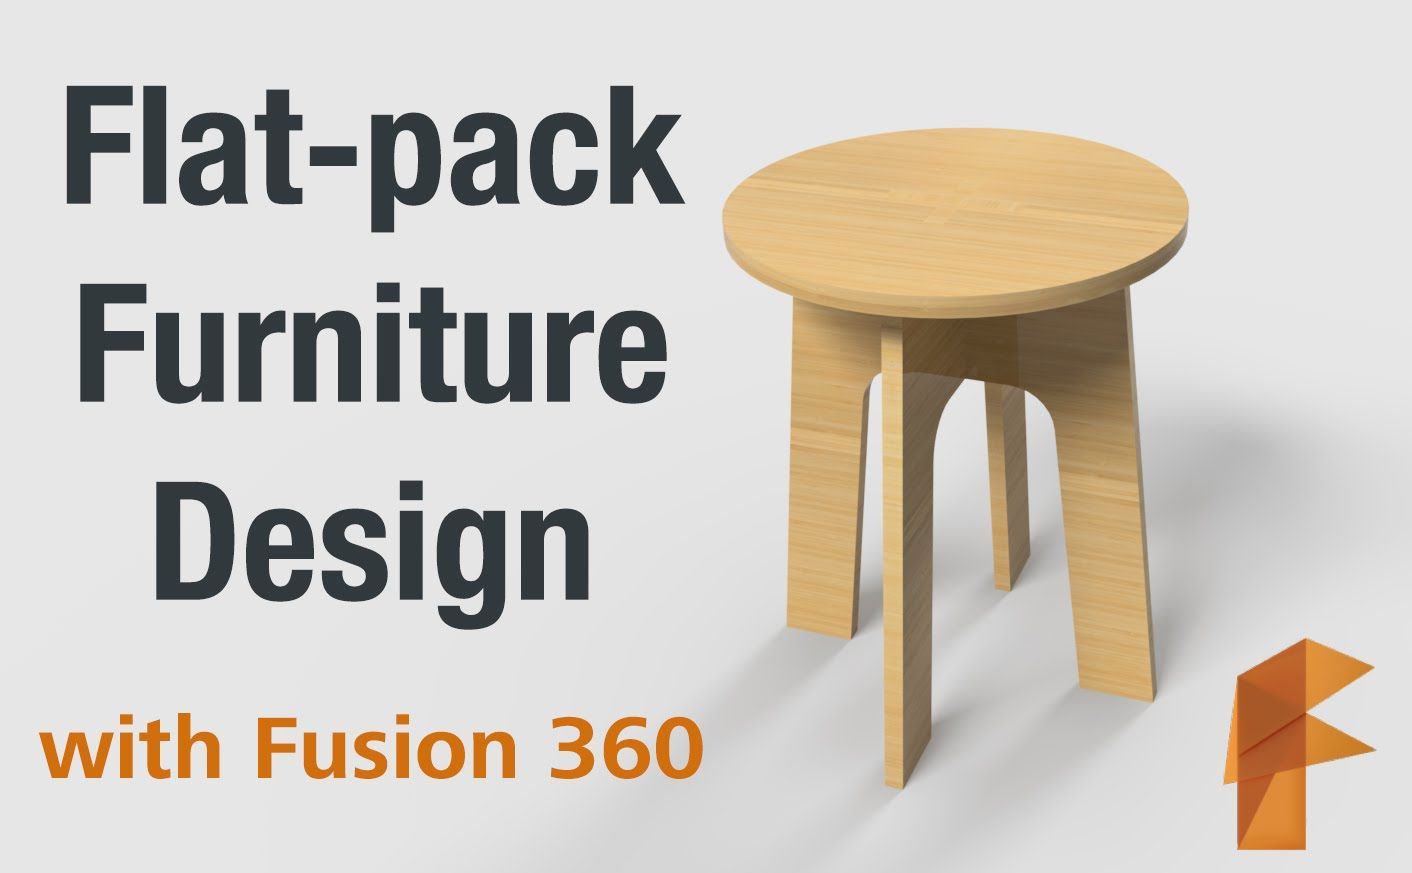 Flat pack furniture design fusion 360 pinterest for Flat pack muebles